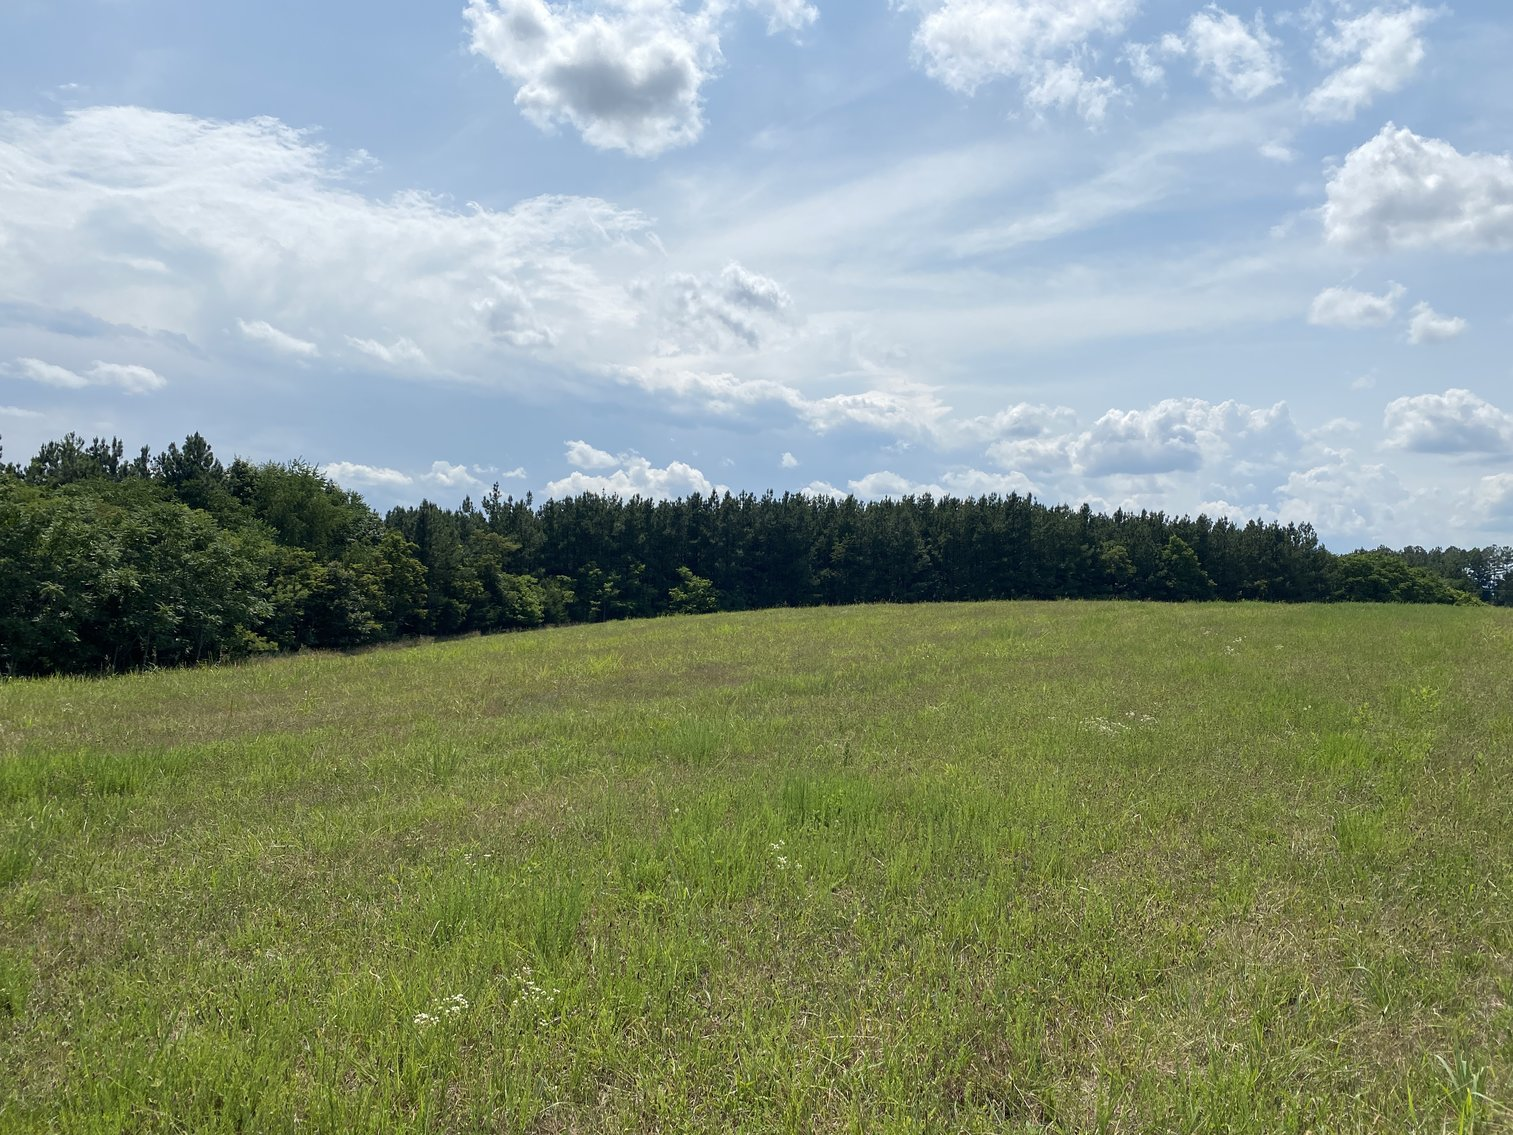 Image for Parcel 1 (9.59+/- acres) of 5 Individual Land Parcels Totaling 77.9 +/- Acres in Franklin County, VA, Only 10 Miles from Smith Mountain Lake--ONLINE ONLY BIDDING!!